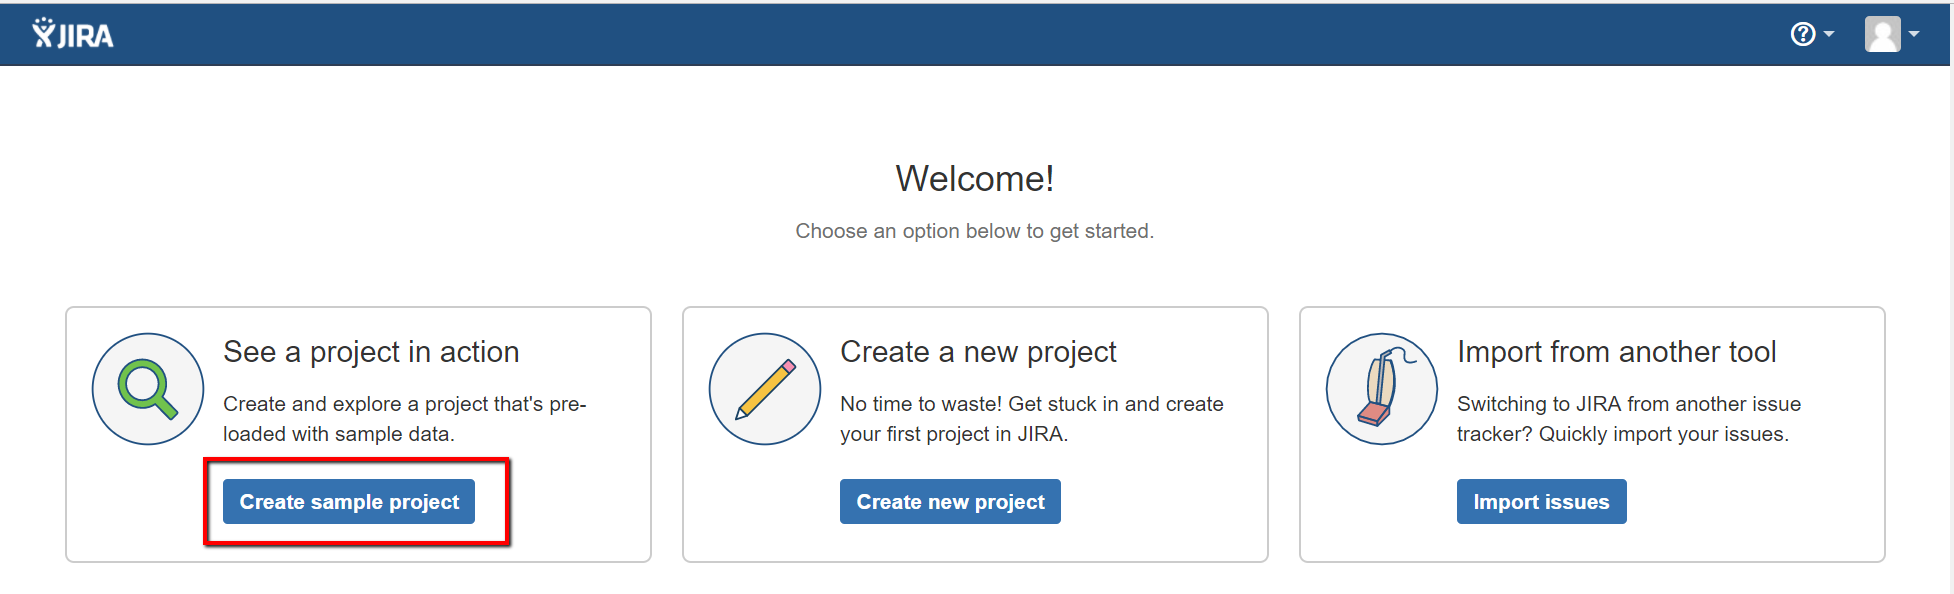 jira-create-sample-project